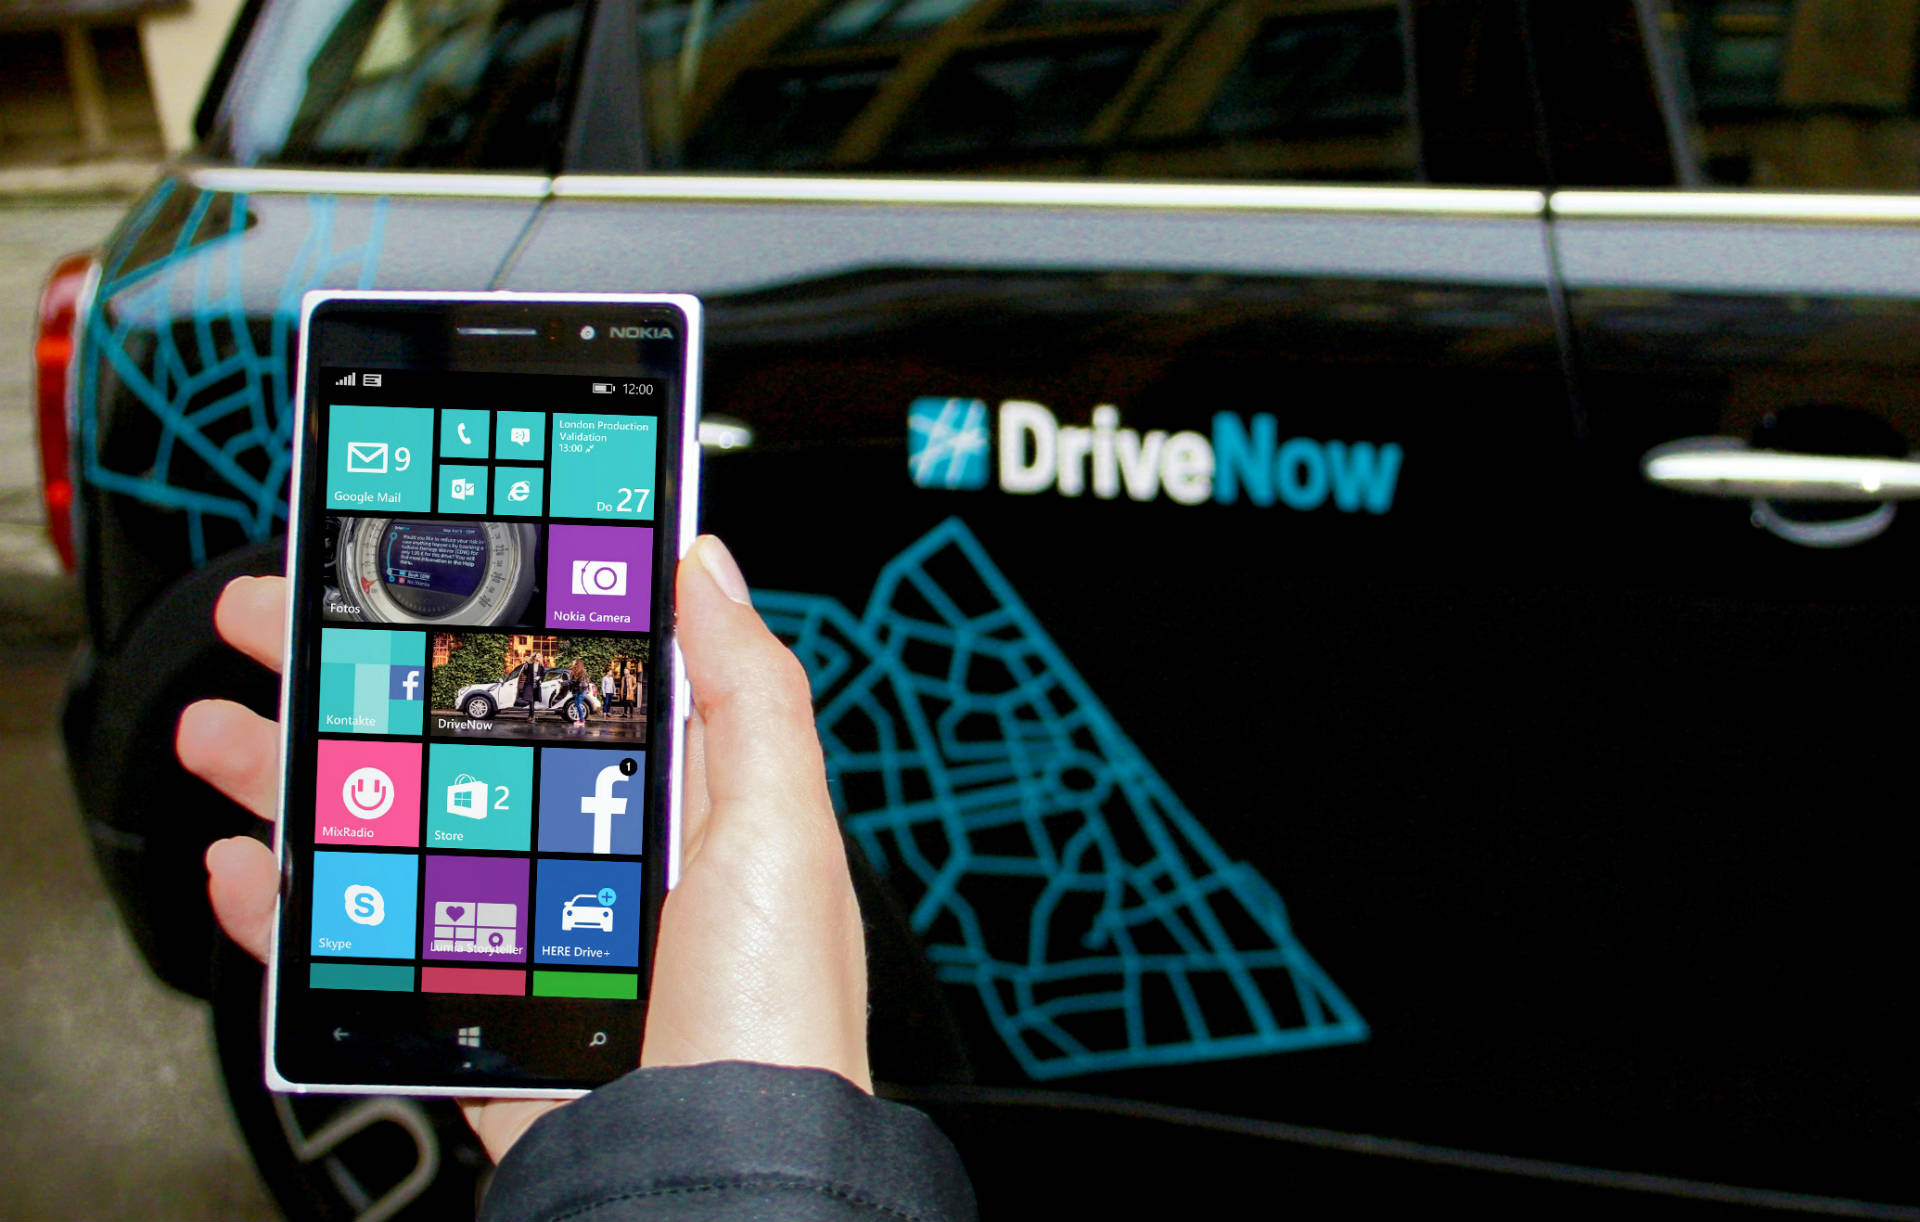 Windows Phone DriveNow App